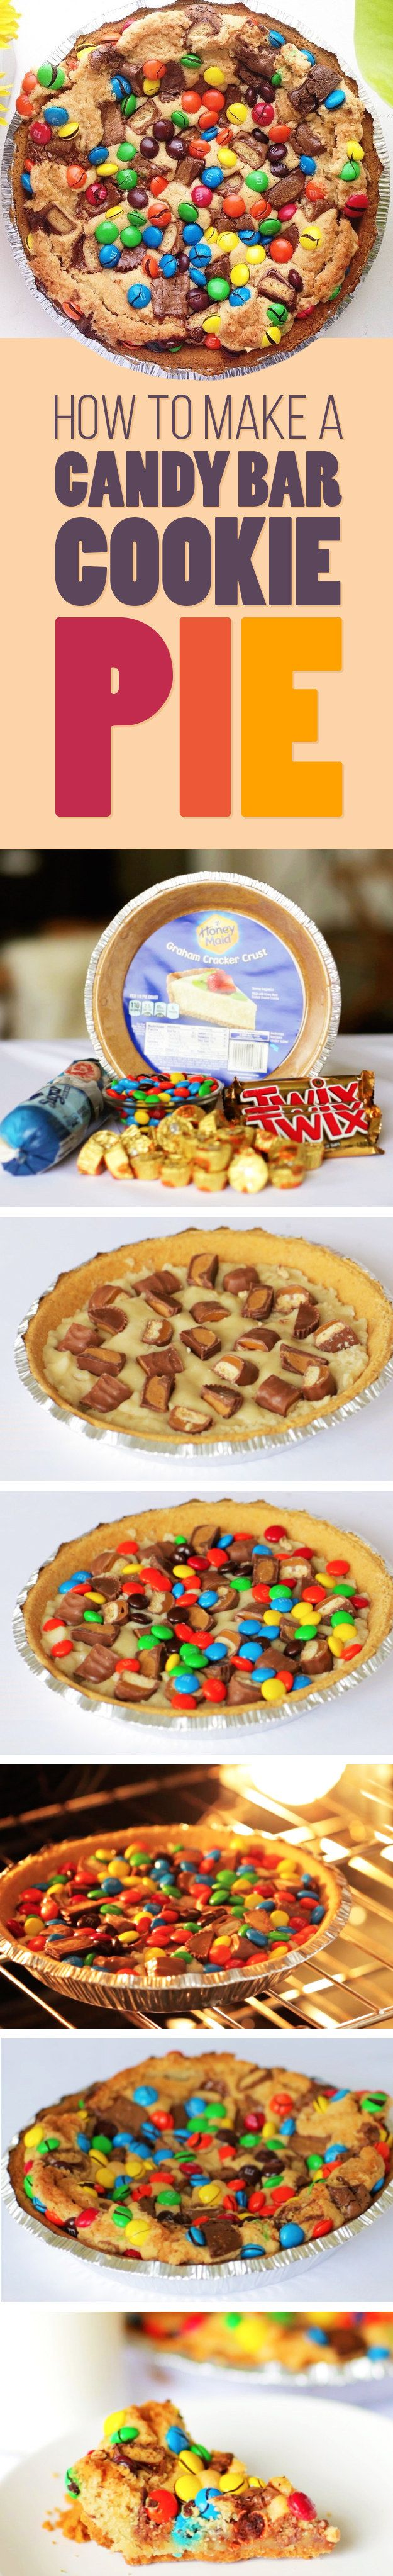 1 store-bought graham cracker pie crust 1 package sugar cookie dough 5 to 7 mini Reese's cups 4 Twix bars (from 2 packages) 1 cup M&Ms Bake 40 mins @ 350